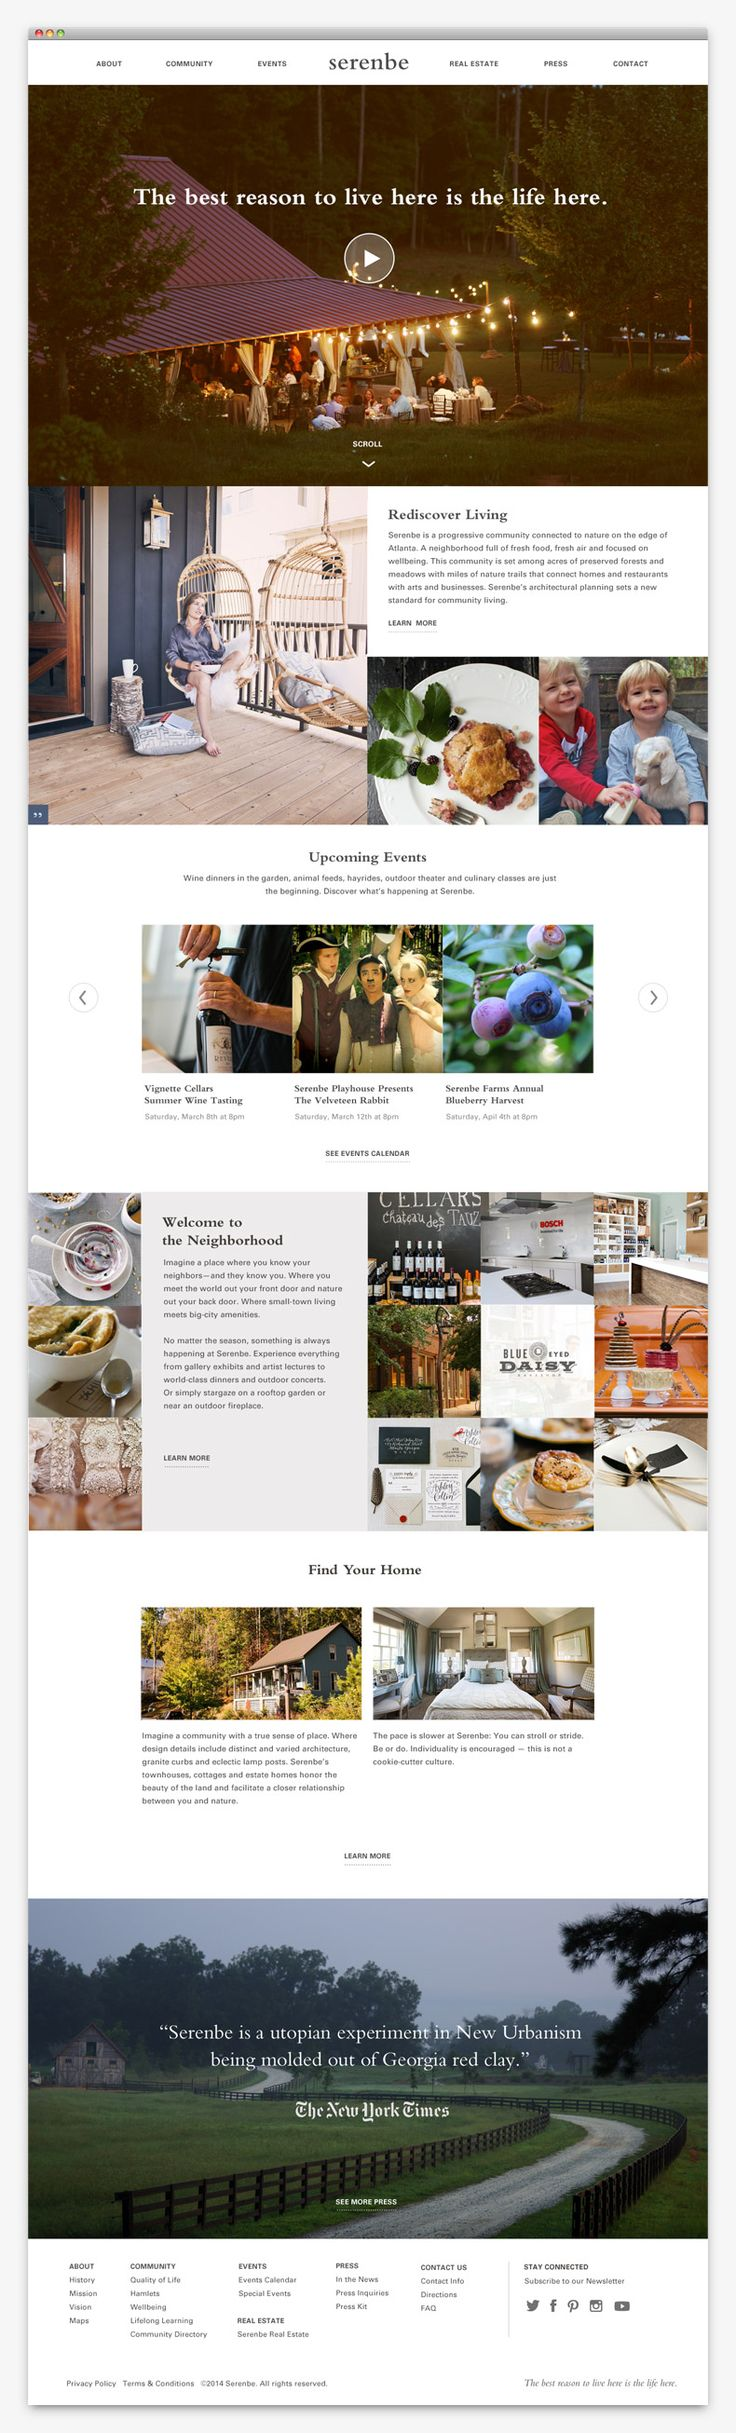 serenbe website design by apartment one